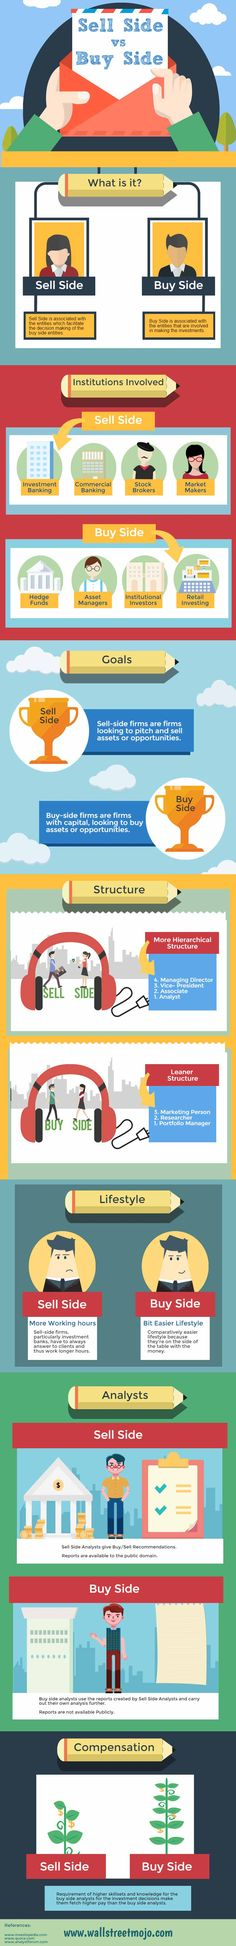 Choosing a correct career means planning a better future. Though in today's time many of you must be in a confusion when it comes to choosing some wise career opportunities. Here is a quick infographic explanation to those who are in dilemma whether to go for SELL SIDE or BUY SIDE. As both the career has its own advantages and disadvantages by reading this you will be in a state to make a wise decision. Learn the differences between SELL SIDE v/s BUY SIDE  in a few seconds.